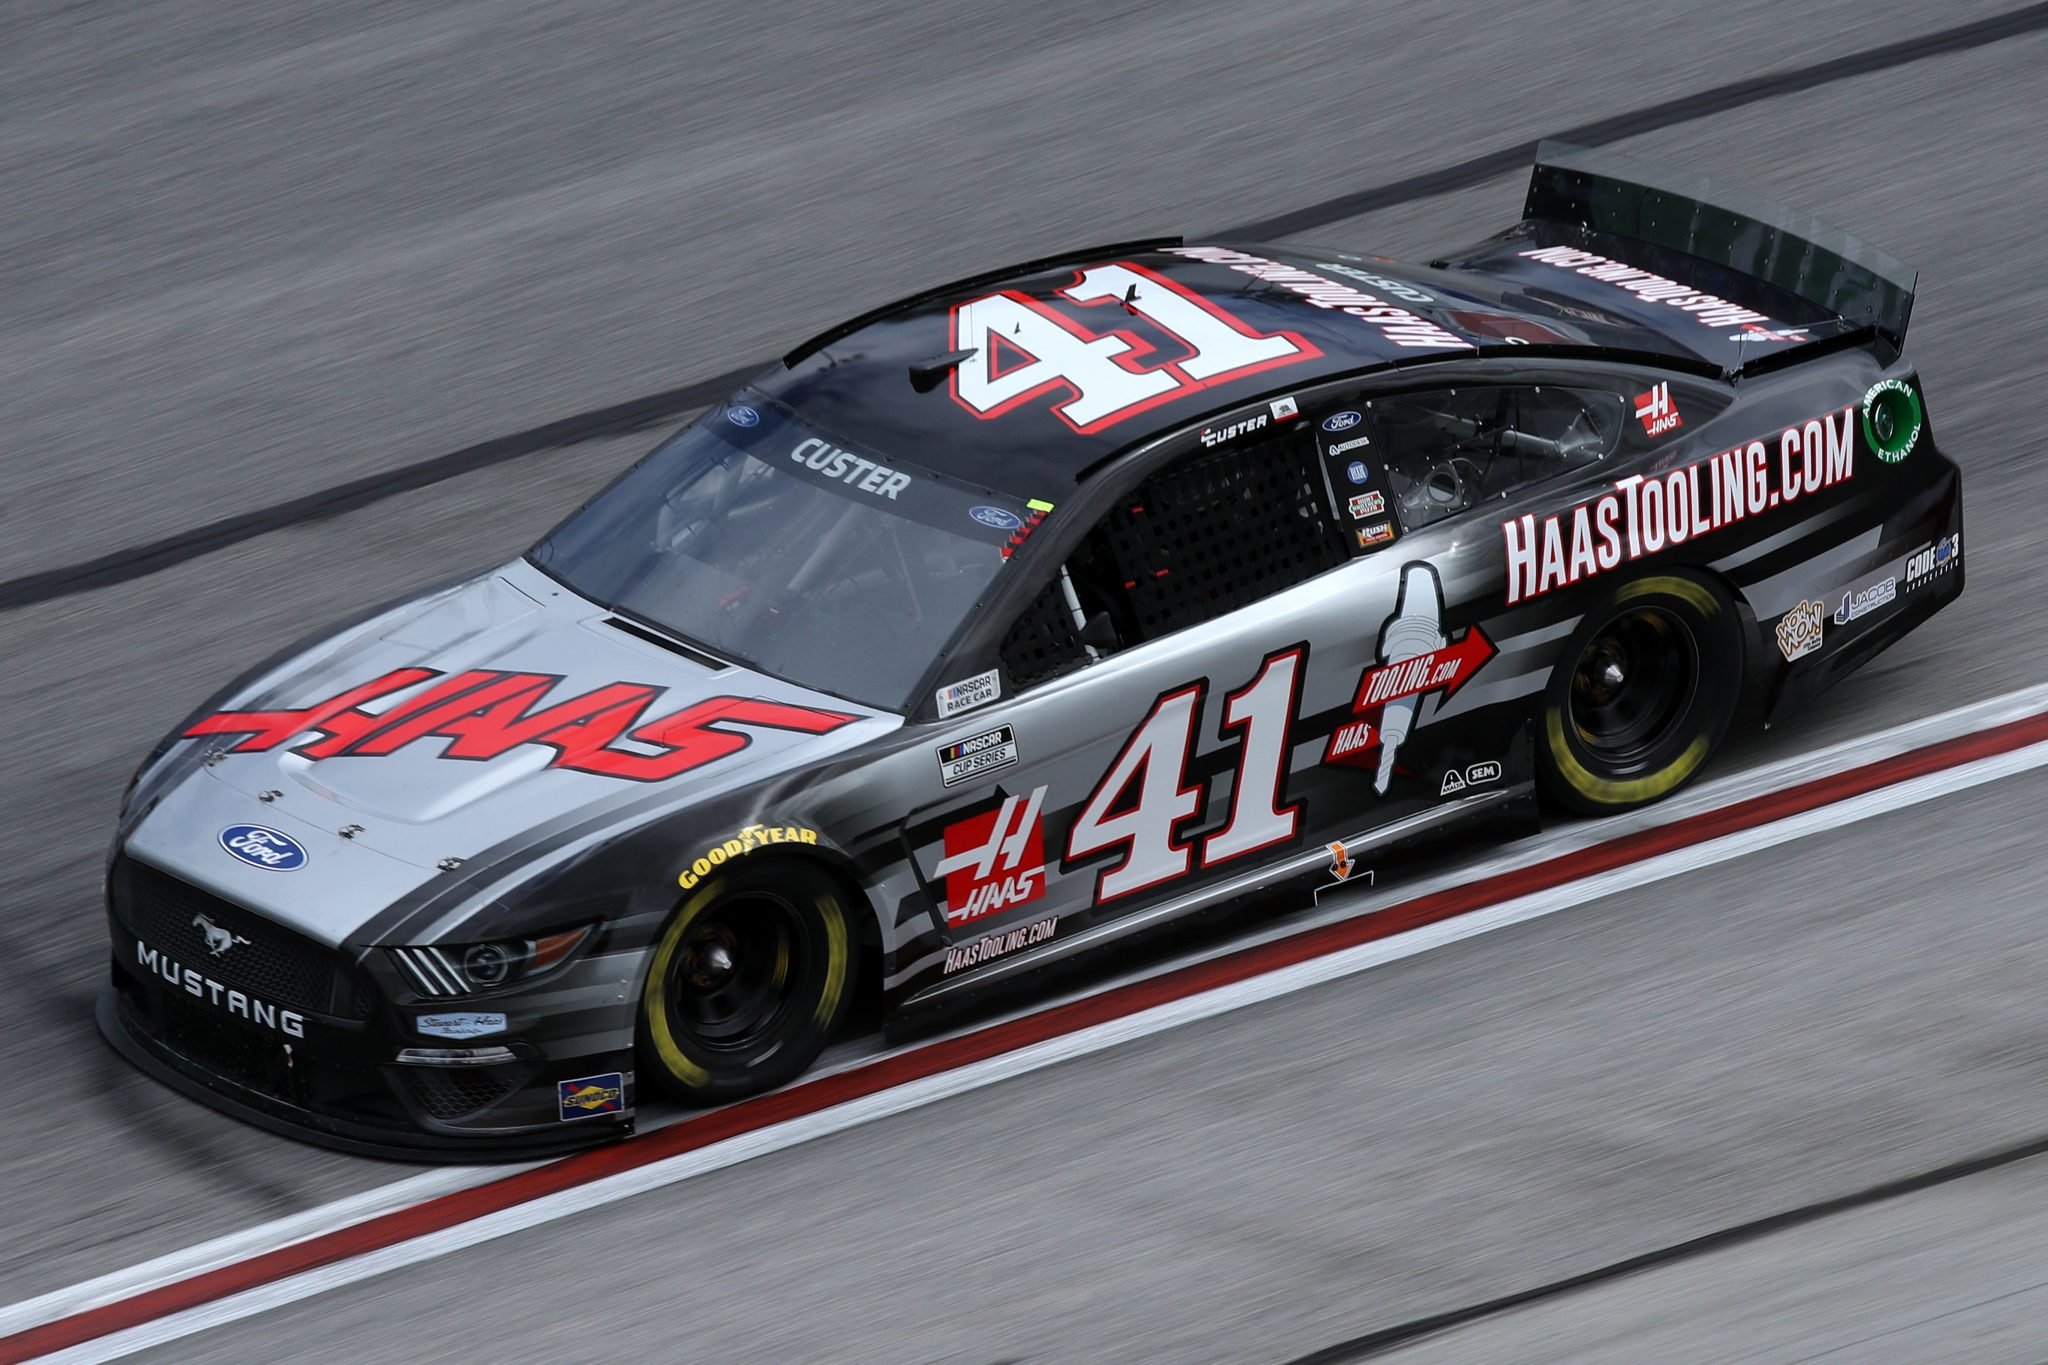 HAMPTON, GEORGIA - MARCH 21: Cole Custer, driver of the #41 HaasTooling.com Ford, drives during the NASCAR Cup Series Folds of Honor QuikTrip 500 at Atlanta Motor Speedway on March 21, 2021 in Hampton, Georgia. (Photo by Sean Gardner/Getty Images) | Getty Images